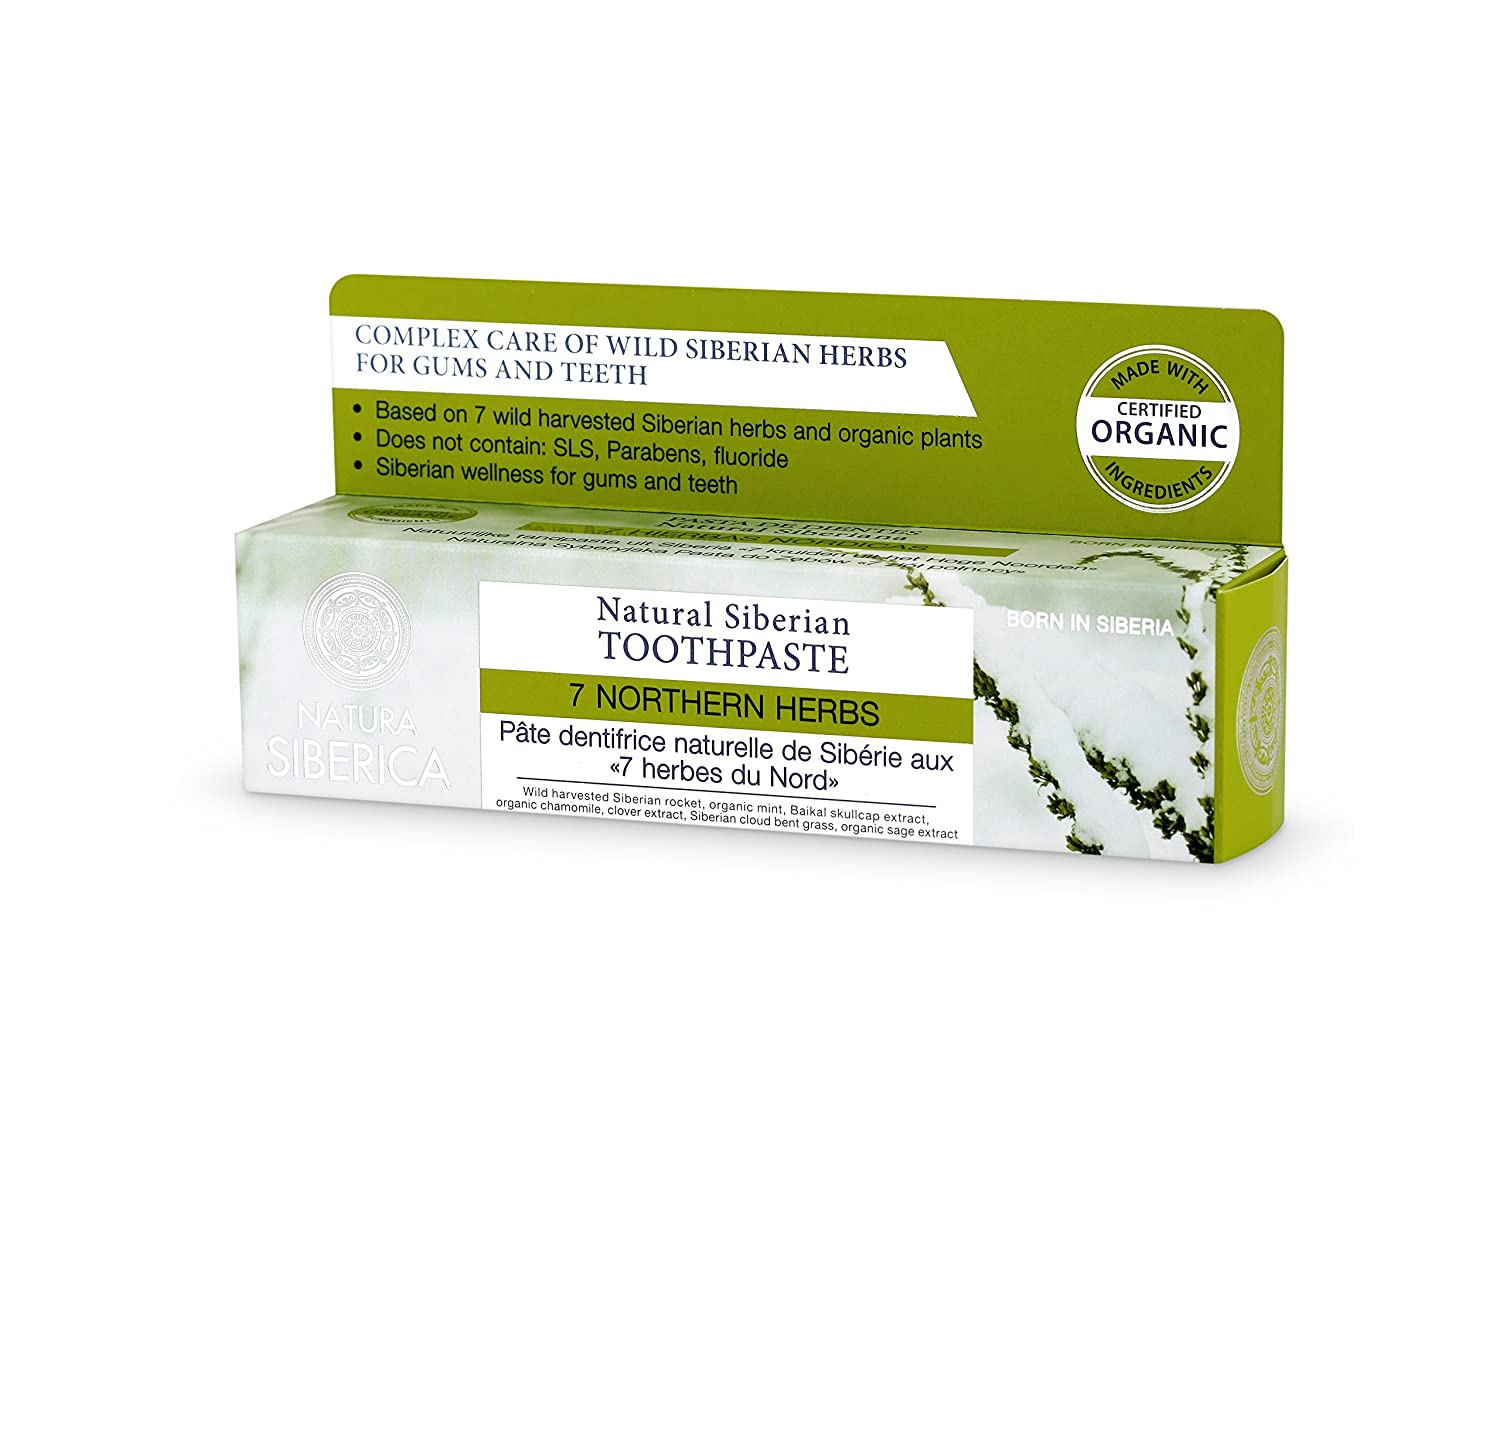 Natura Siberica Natural Siberian Toothpaste 7 Northern Herbs 100g 7531